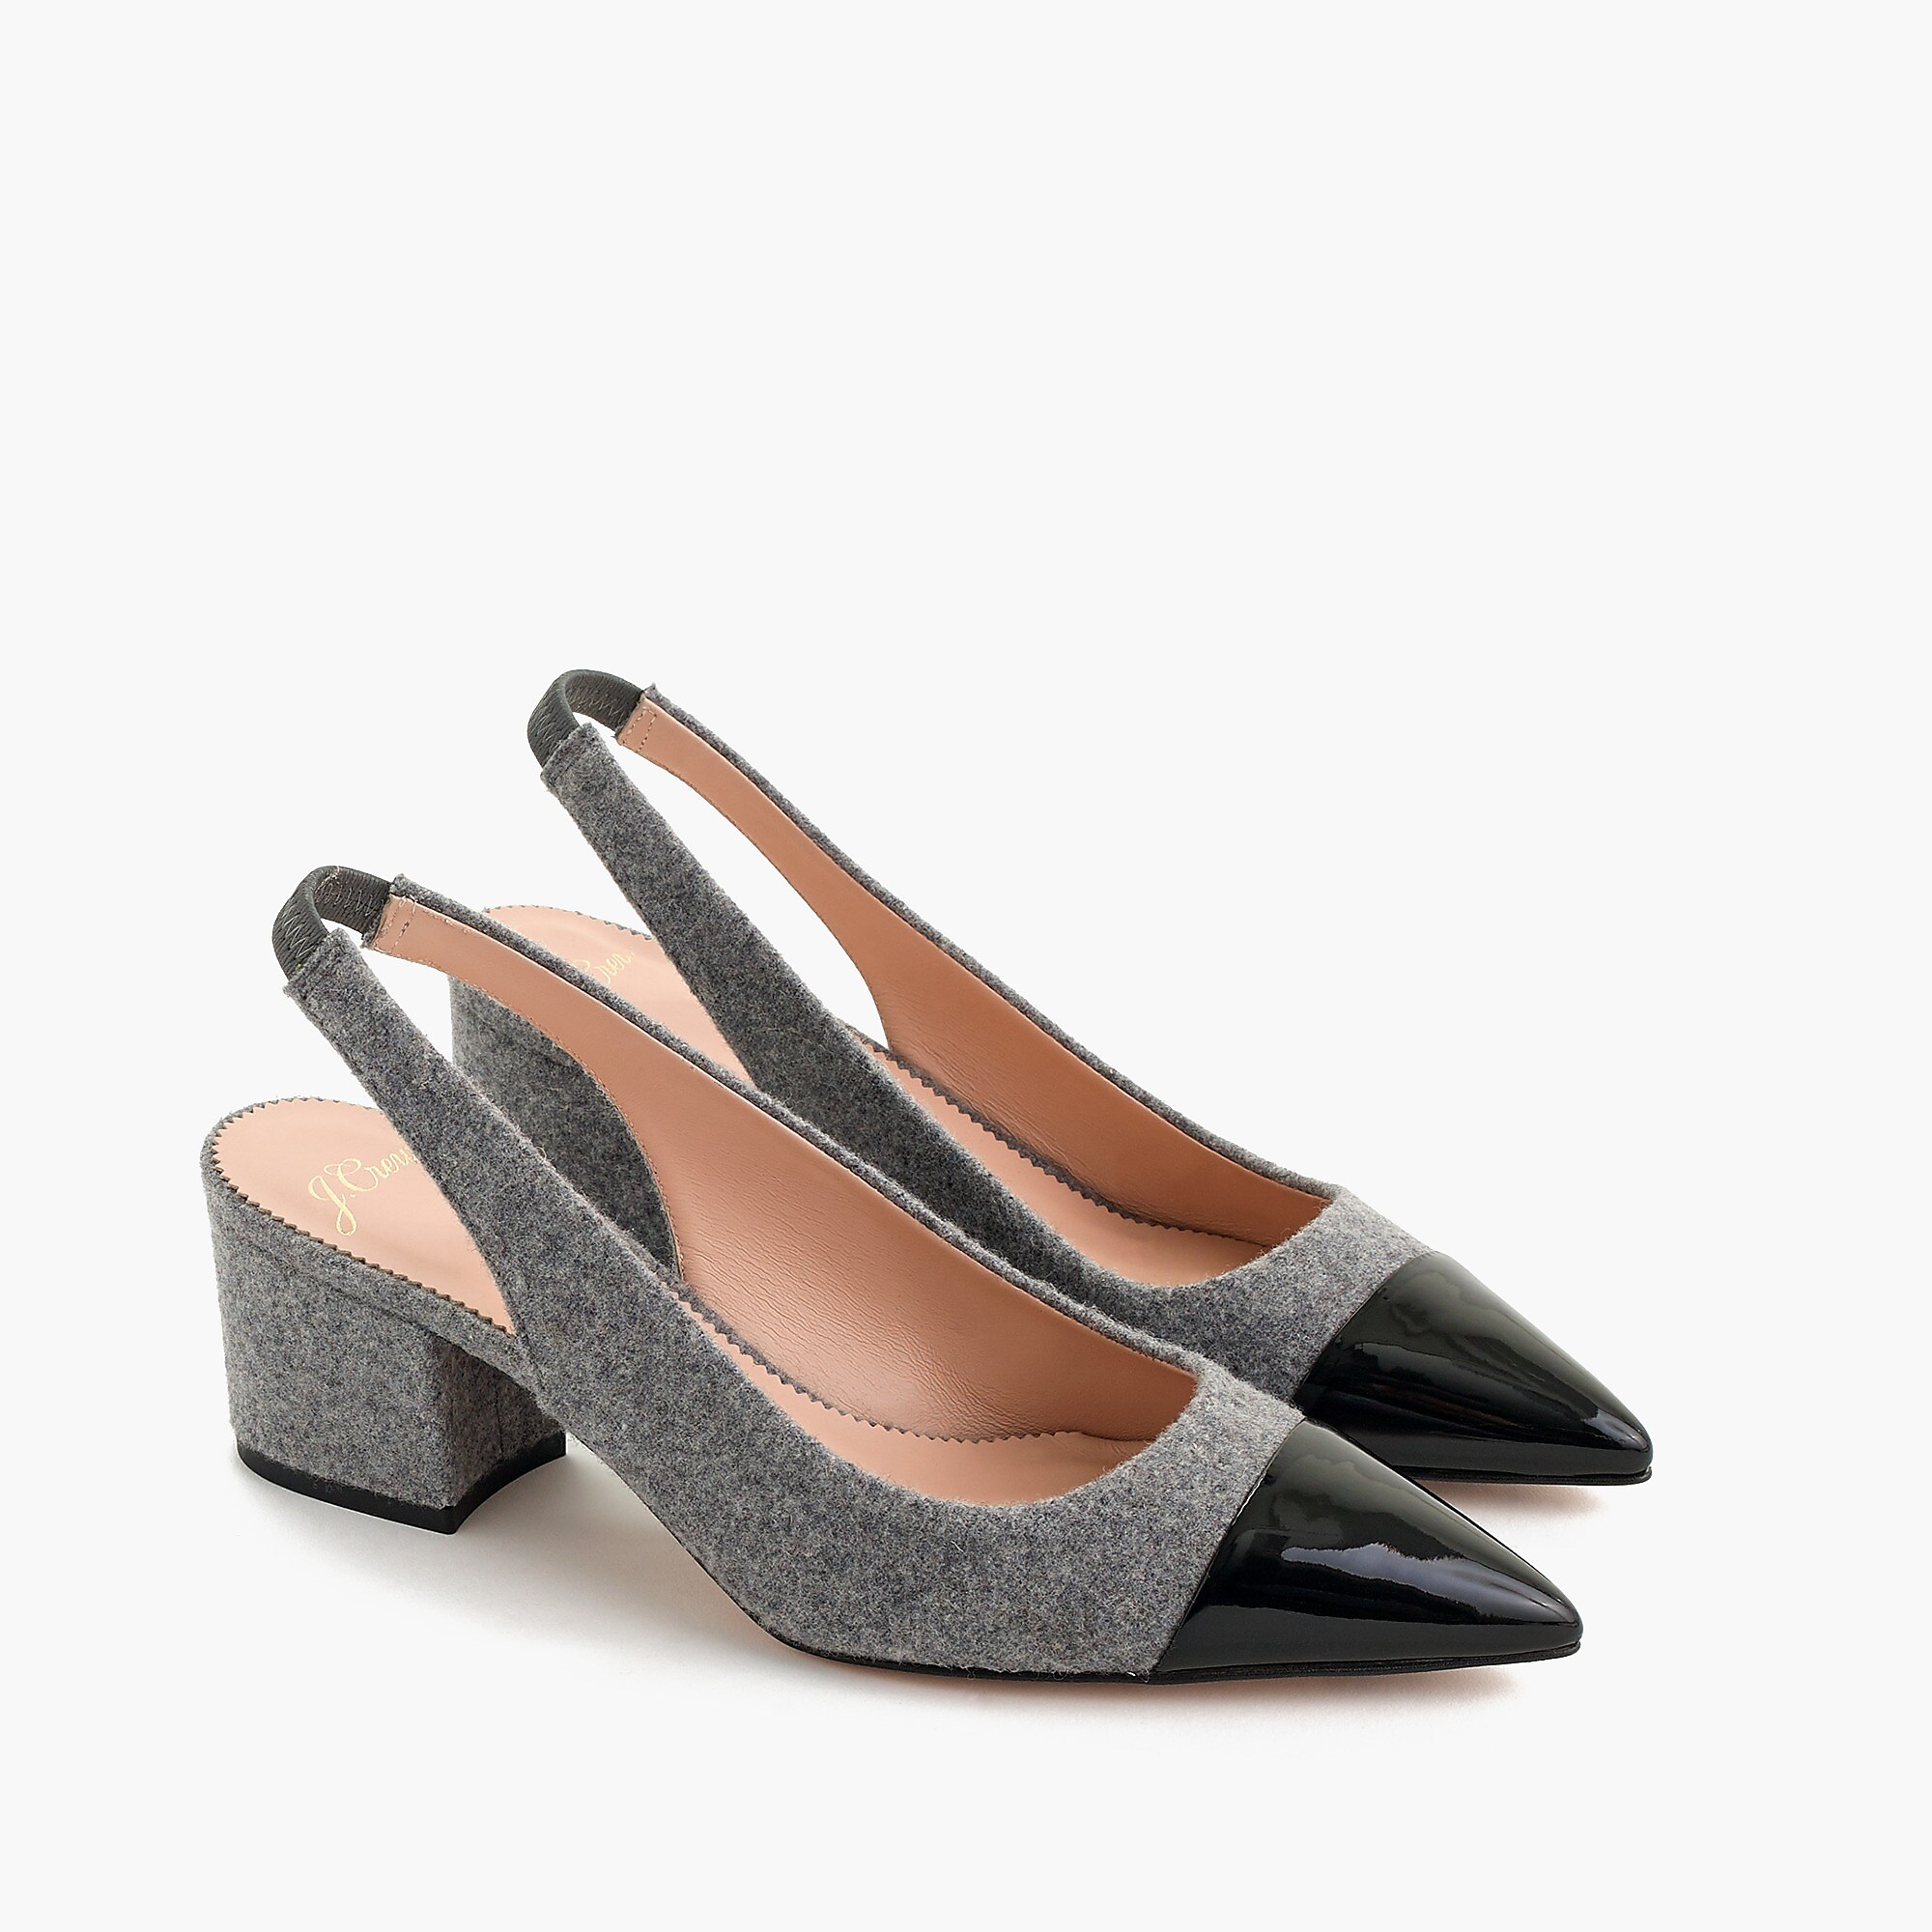 Wool and Leather Slingback Pumps